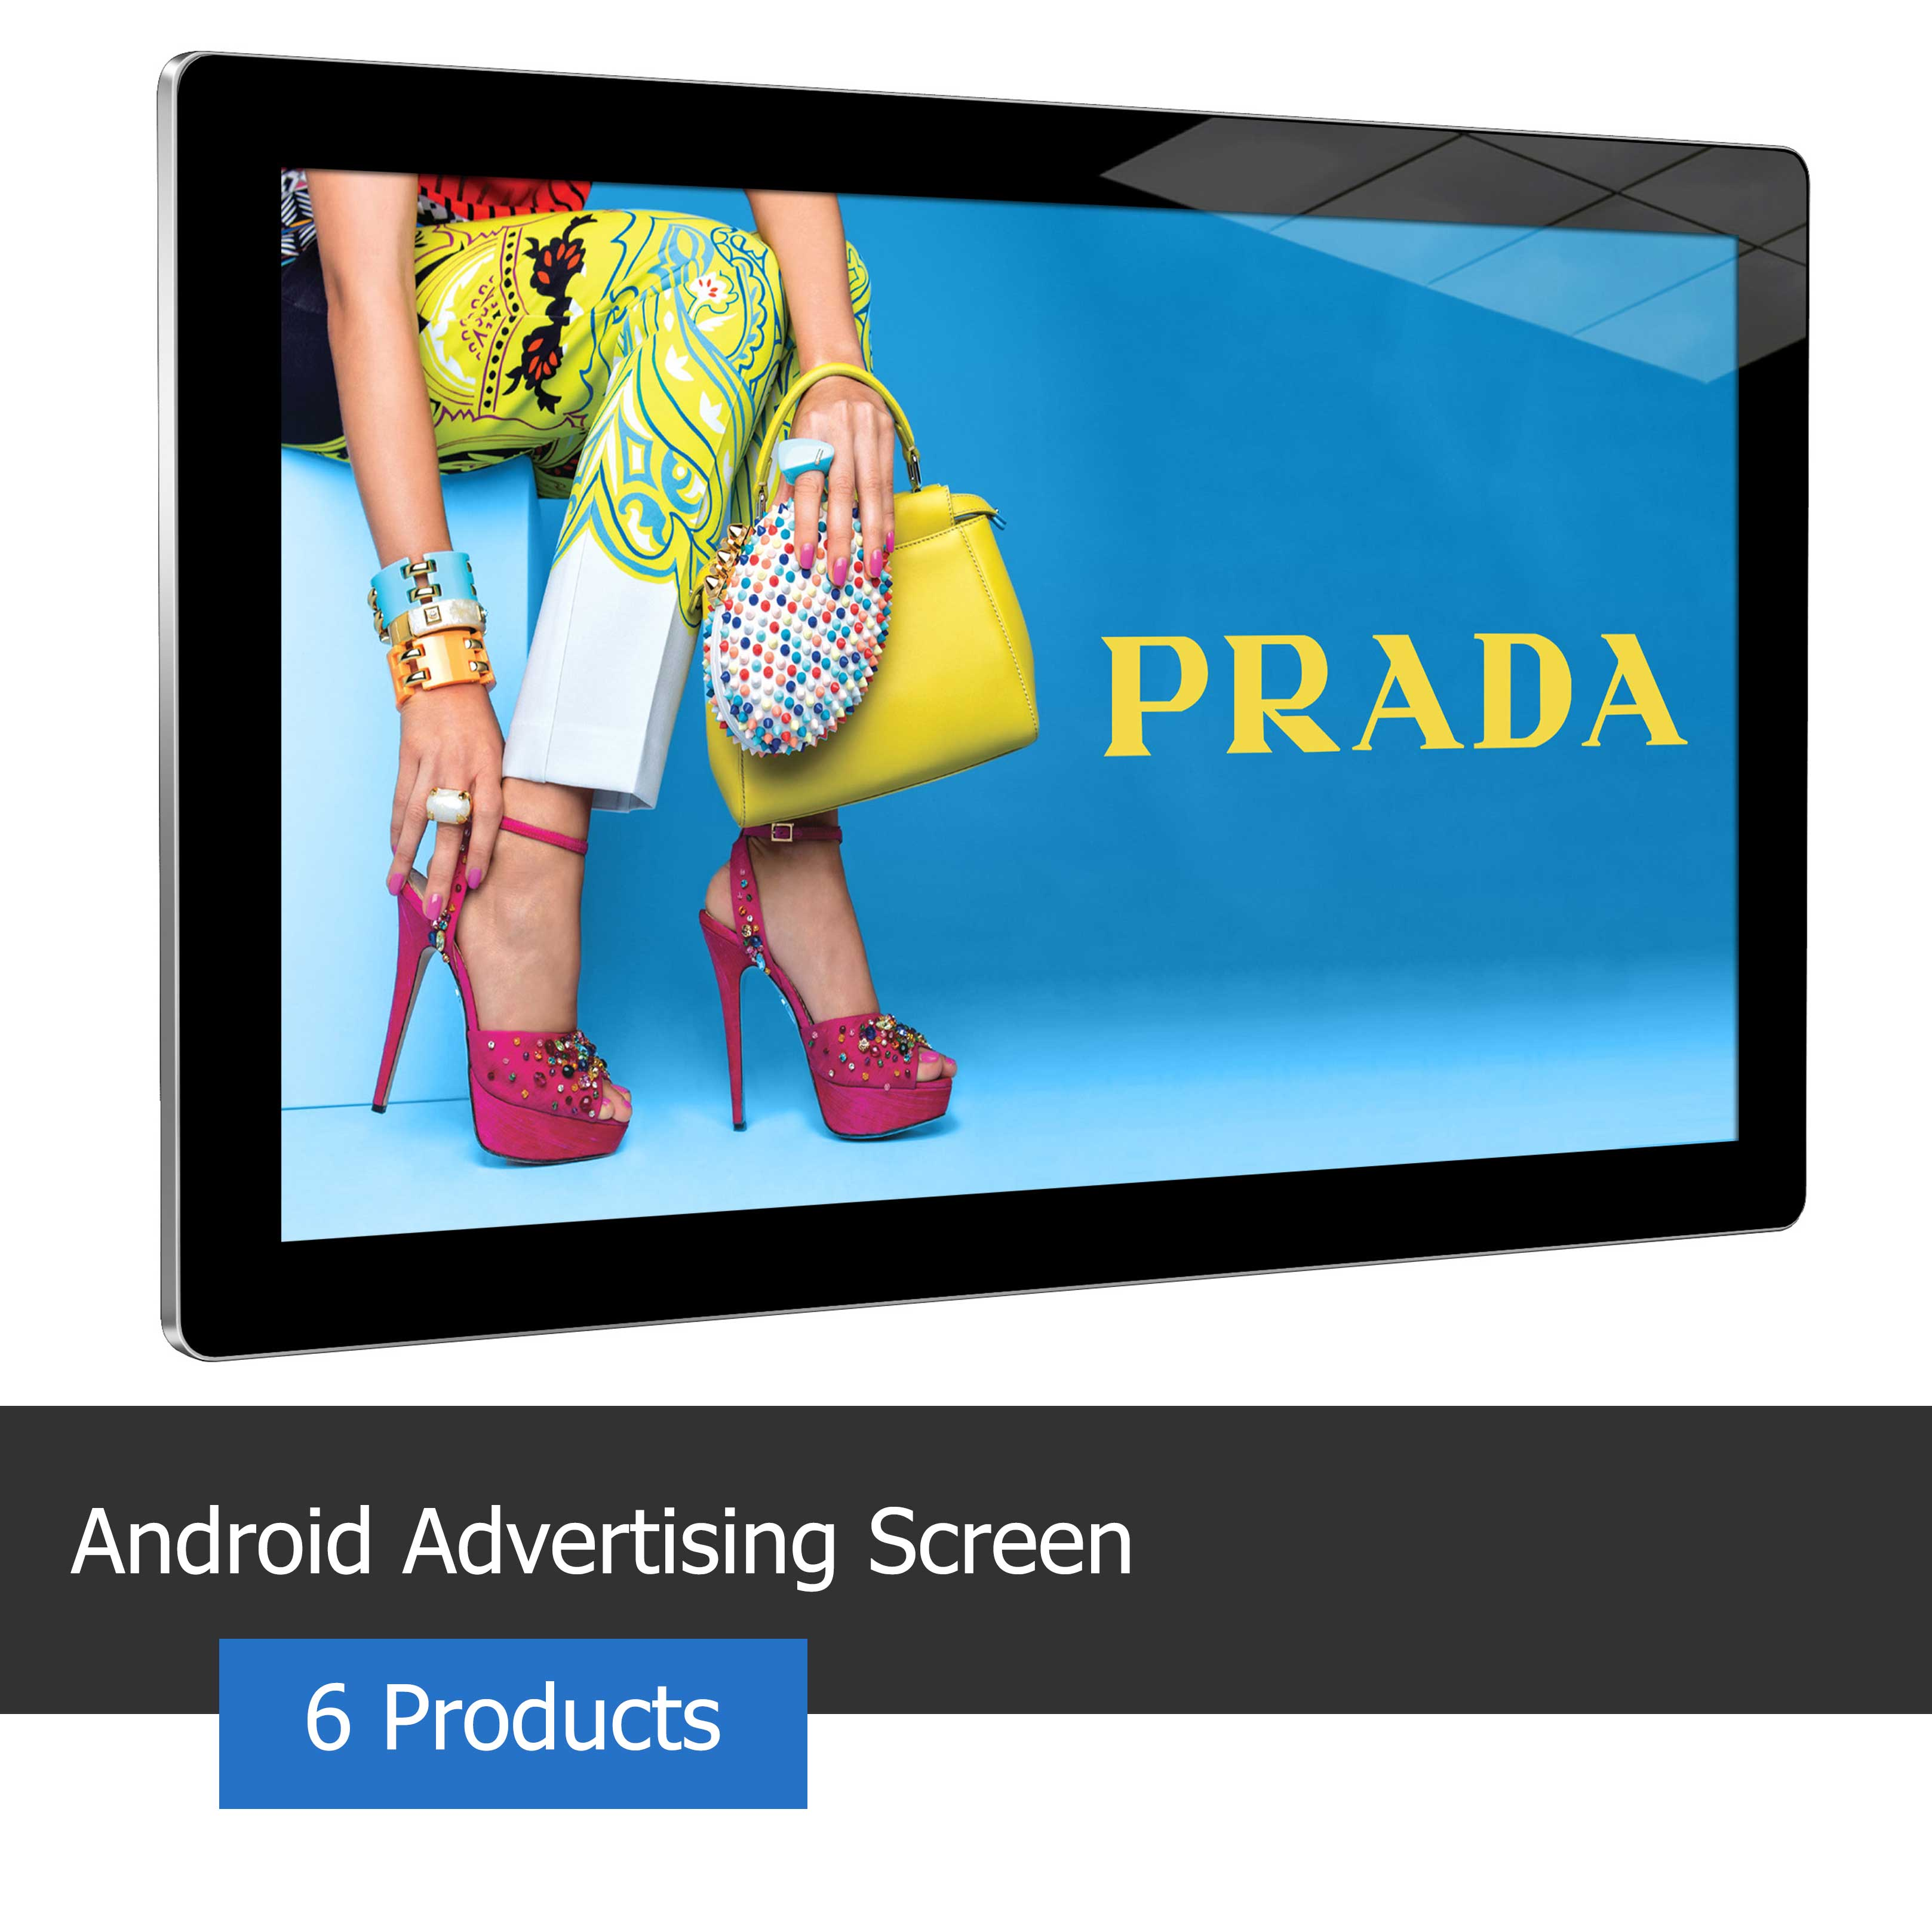 Android Advertising Screen